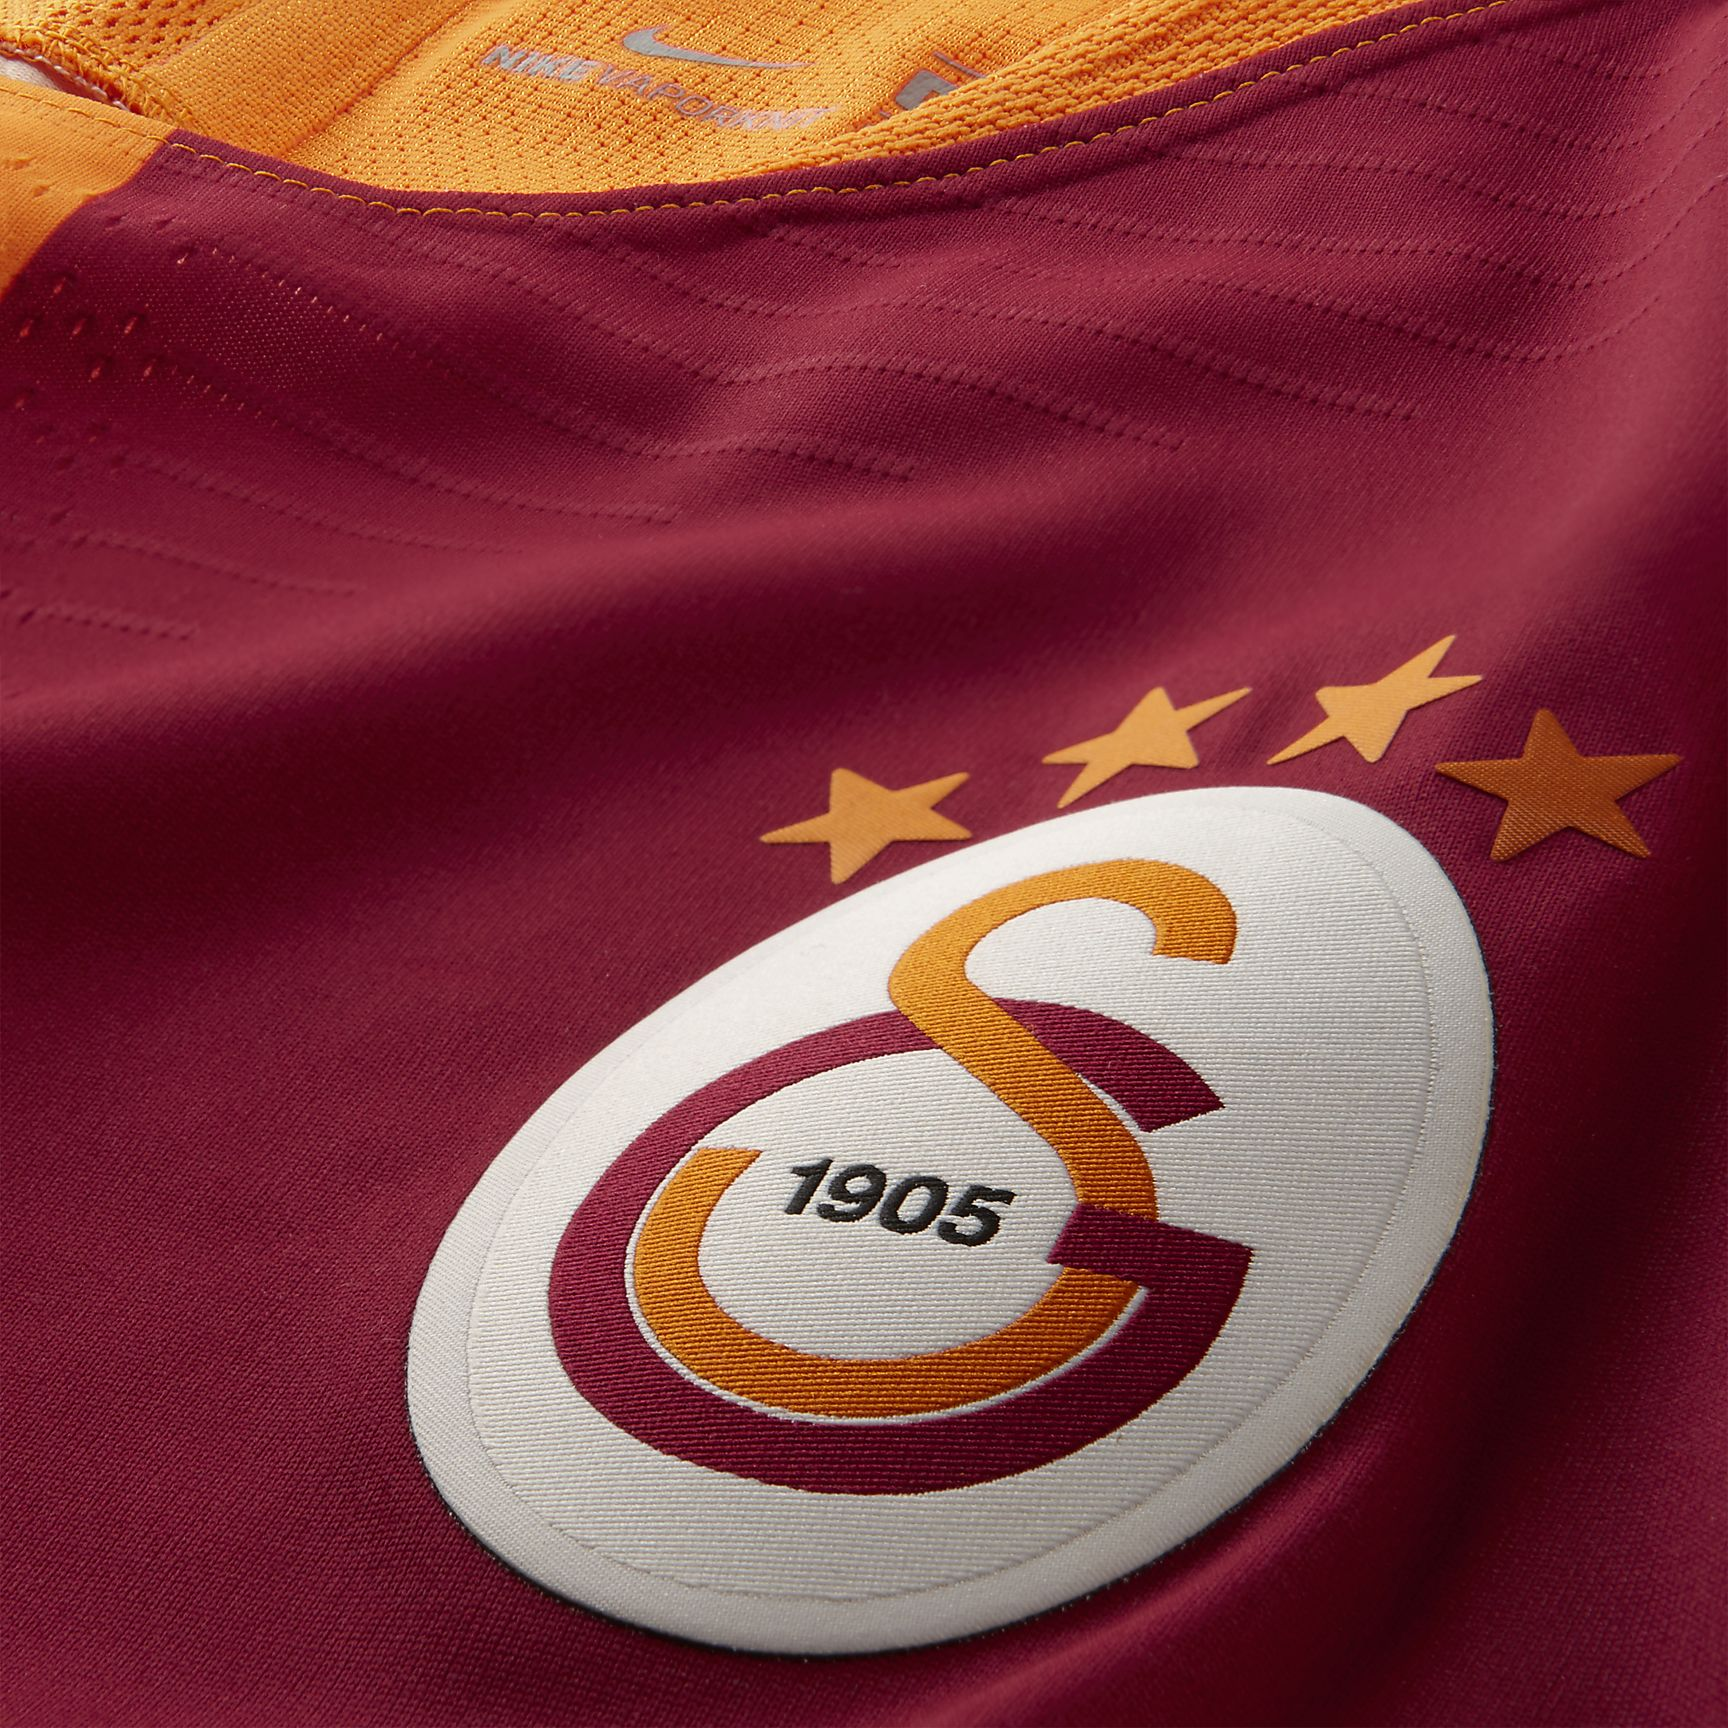 https://c.static-nike.com/a/images/t_PDP_1728_v1/f_auto/x5enk5aefuqoqnlph6ah/2018-19-galatasaray-sk-vapor-match-home-football-shirt-gC8crp.jpg